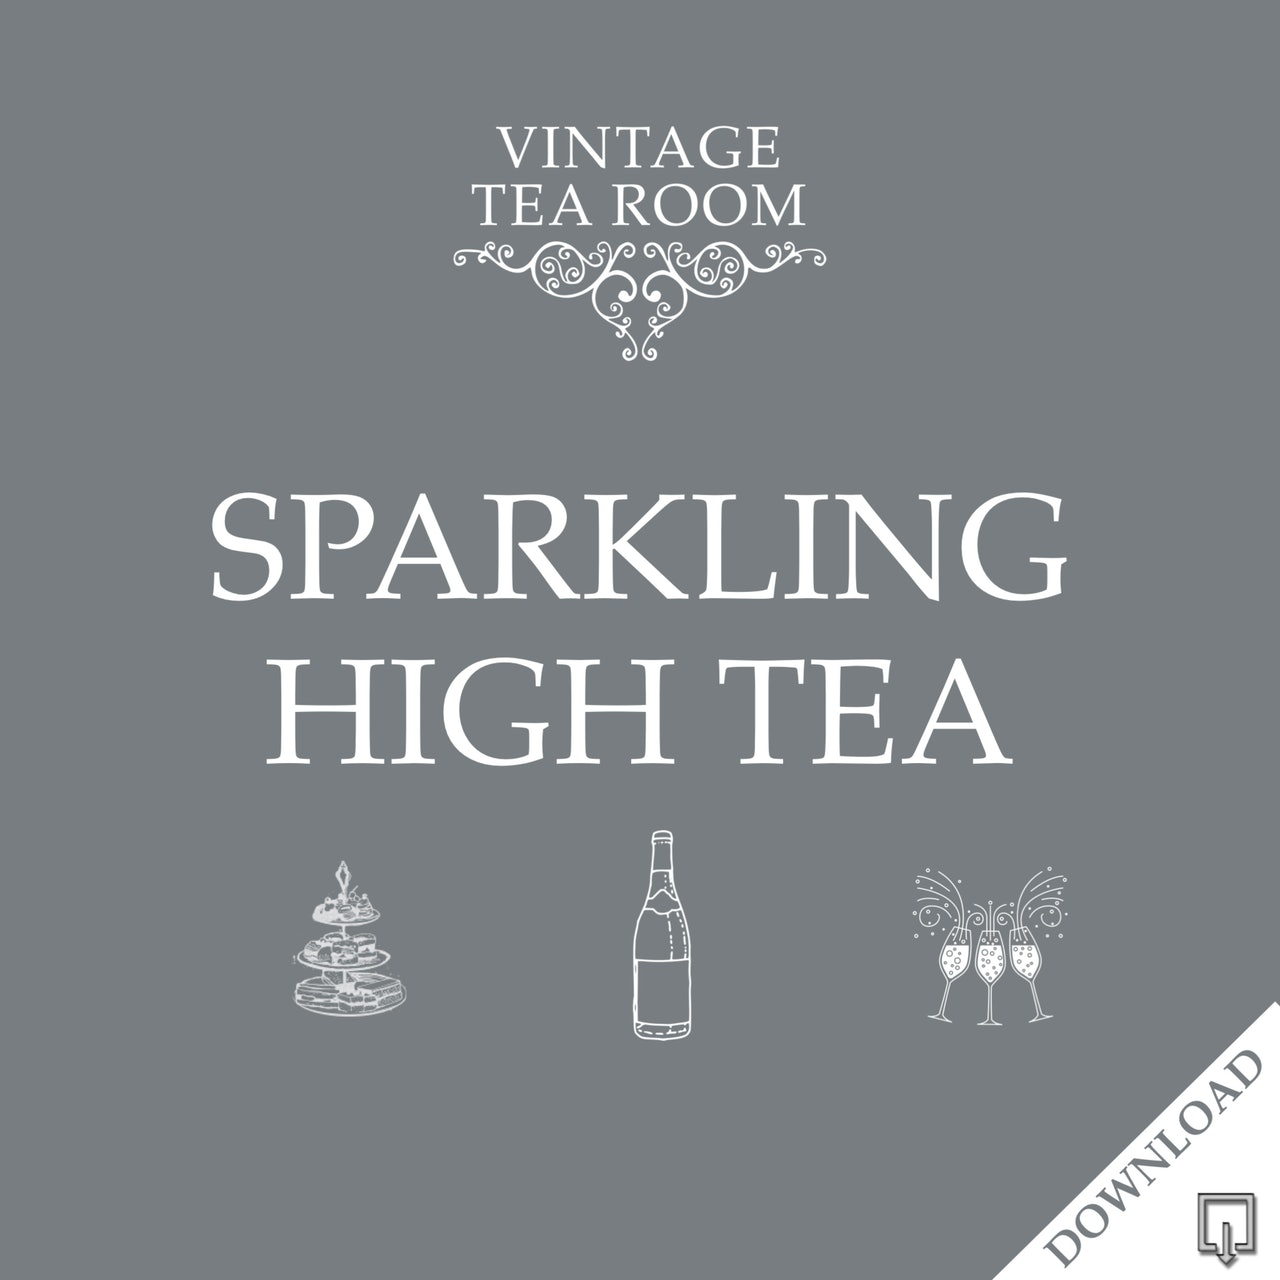 Vintage Sparkling High Tea For Three - Downloadable Voucher